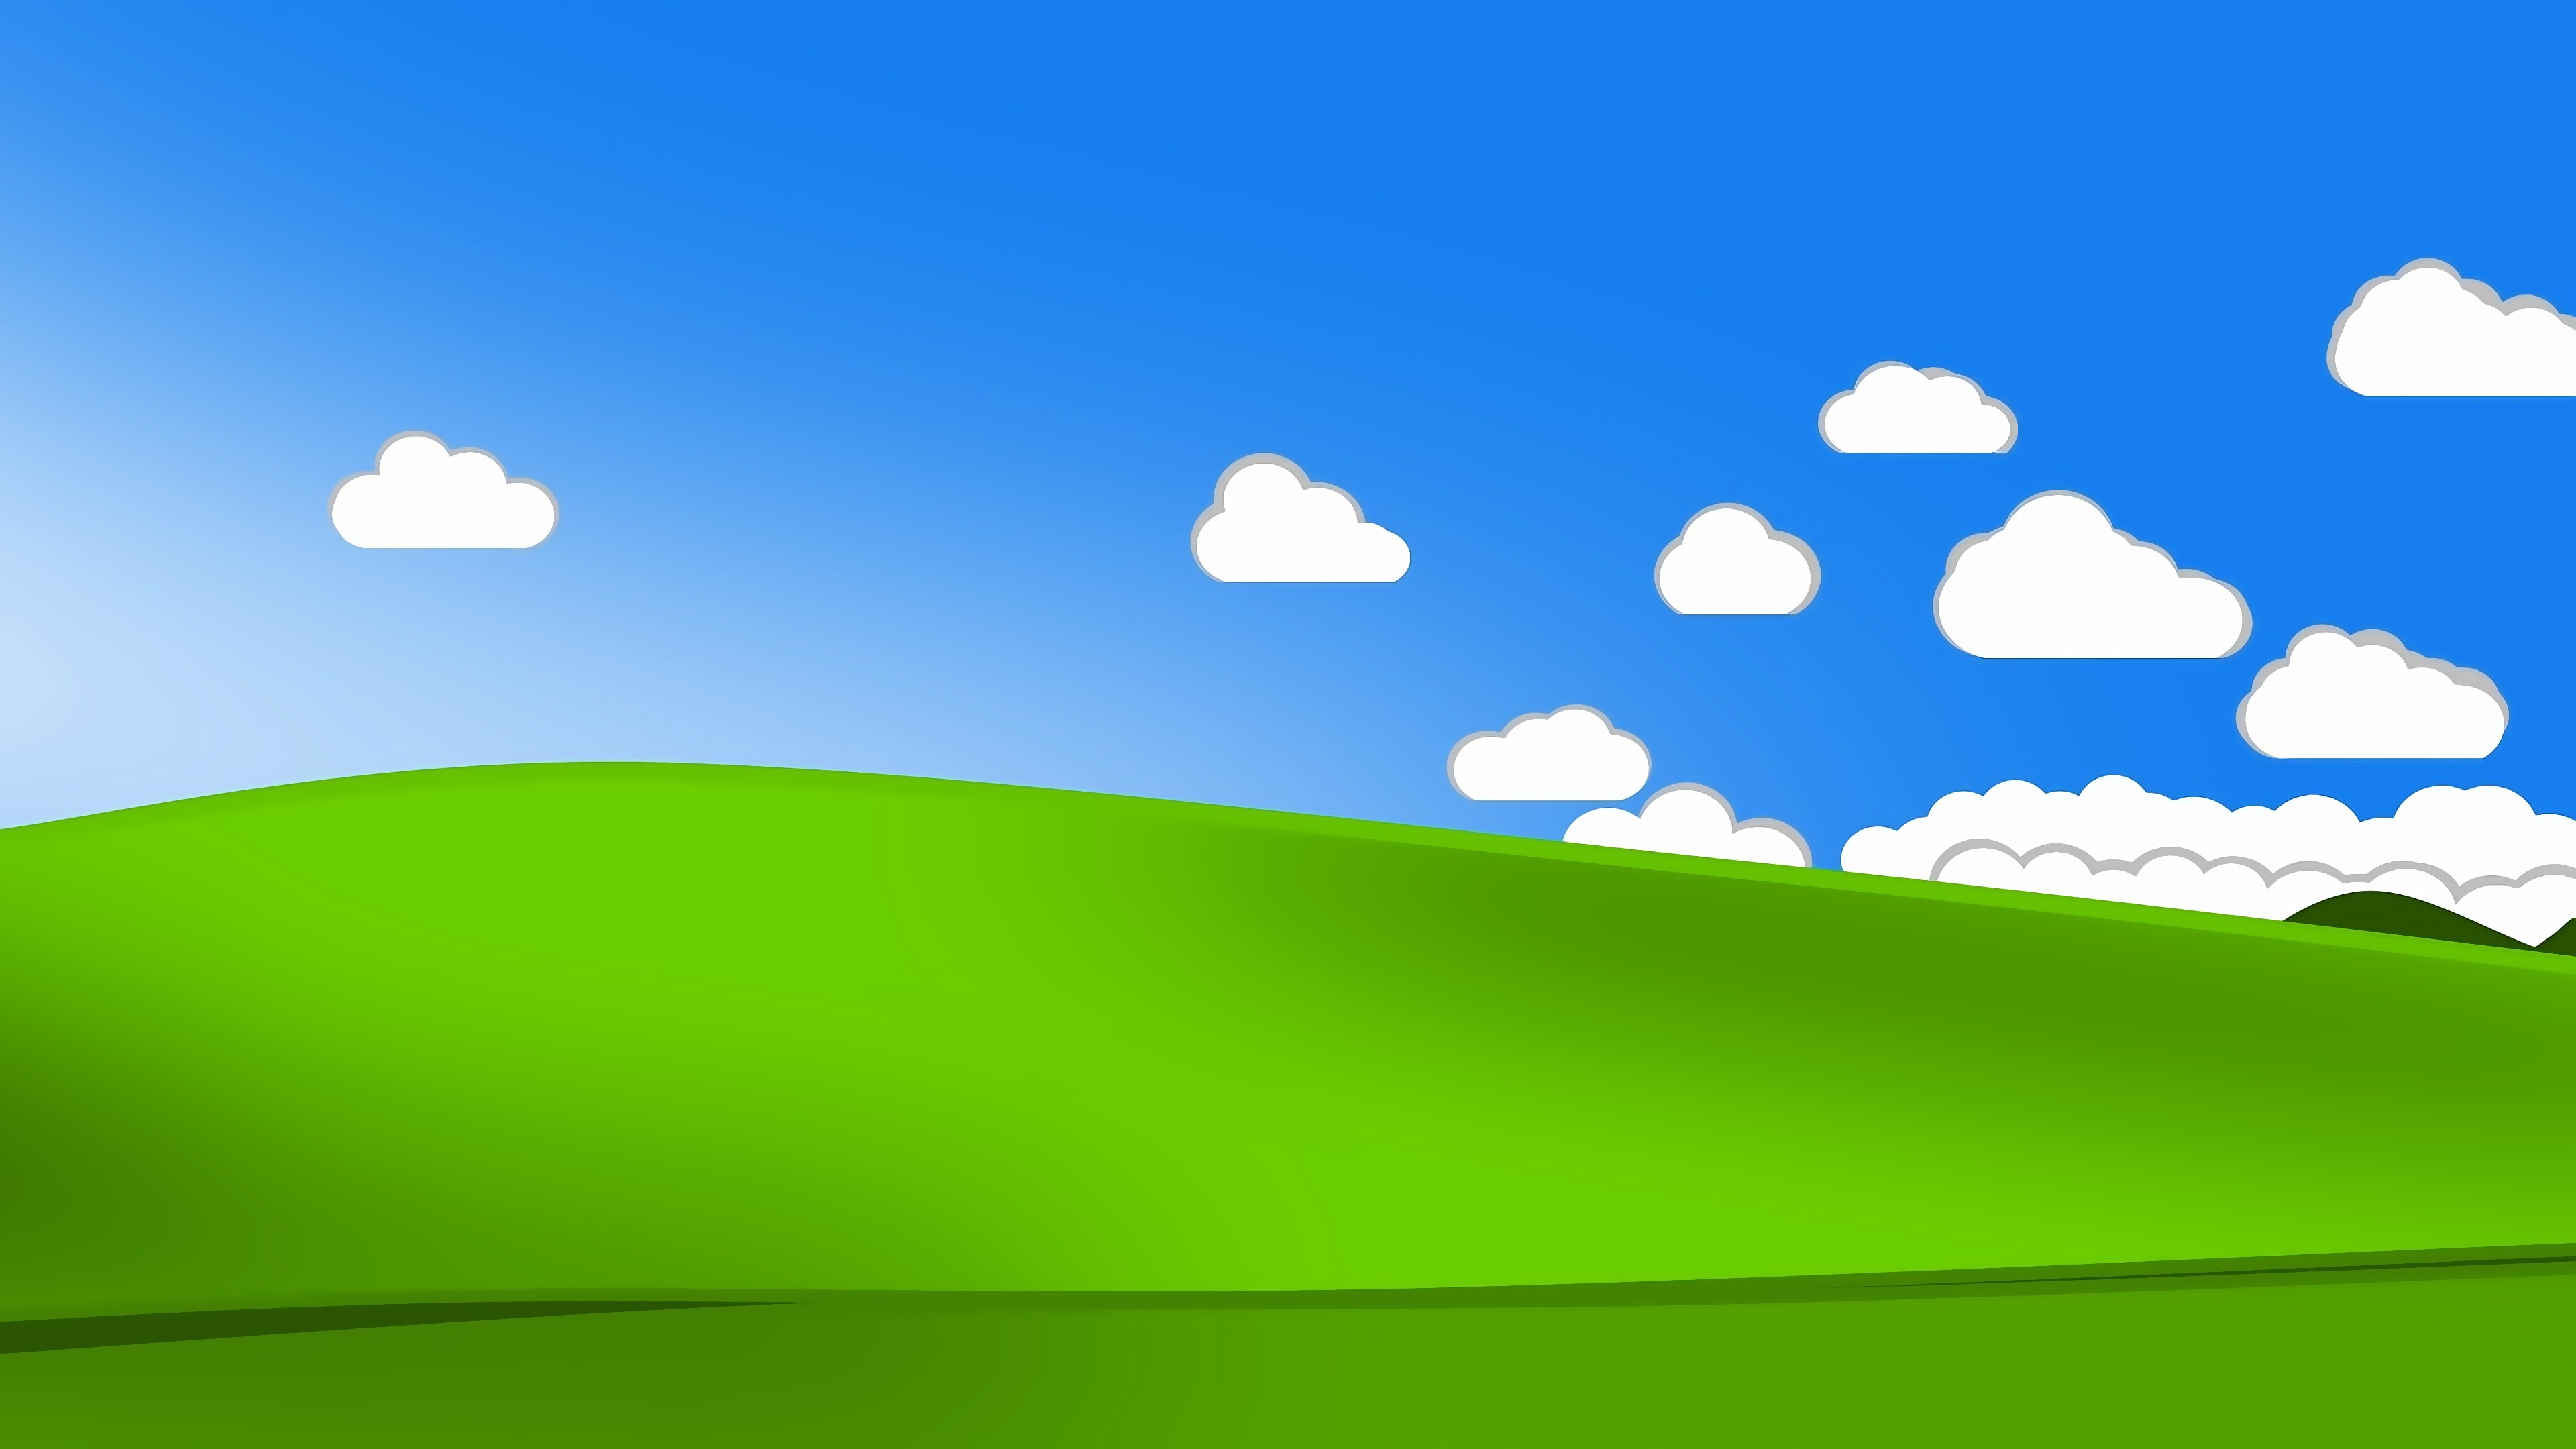 windows bliss, hd computer, 4k wallpapers, images, backgrounds